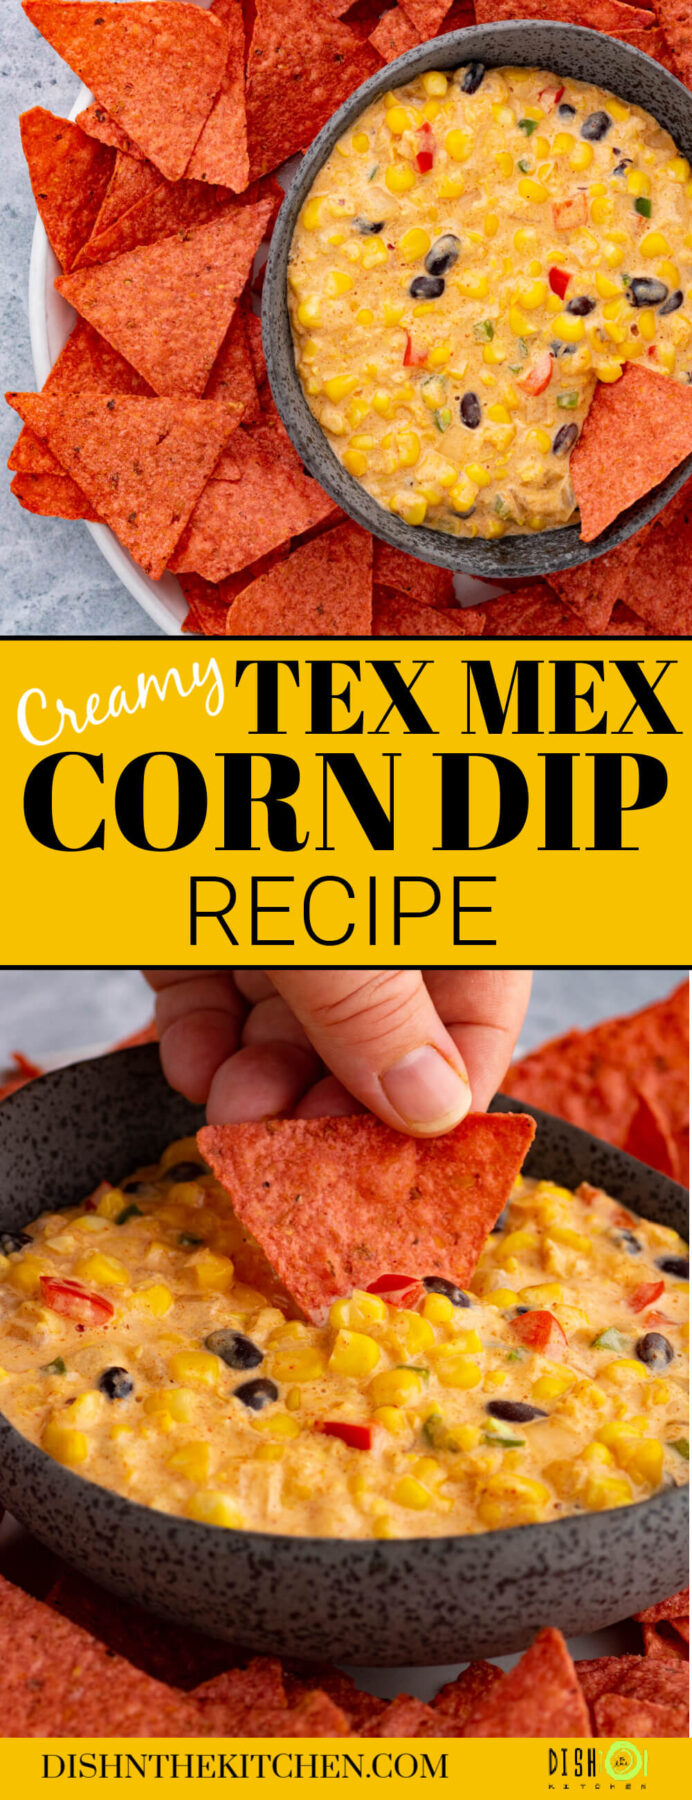 PInterest image featuring a red tortilla chip being dipped in a bowl of creamy corn dip.